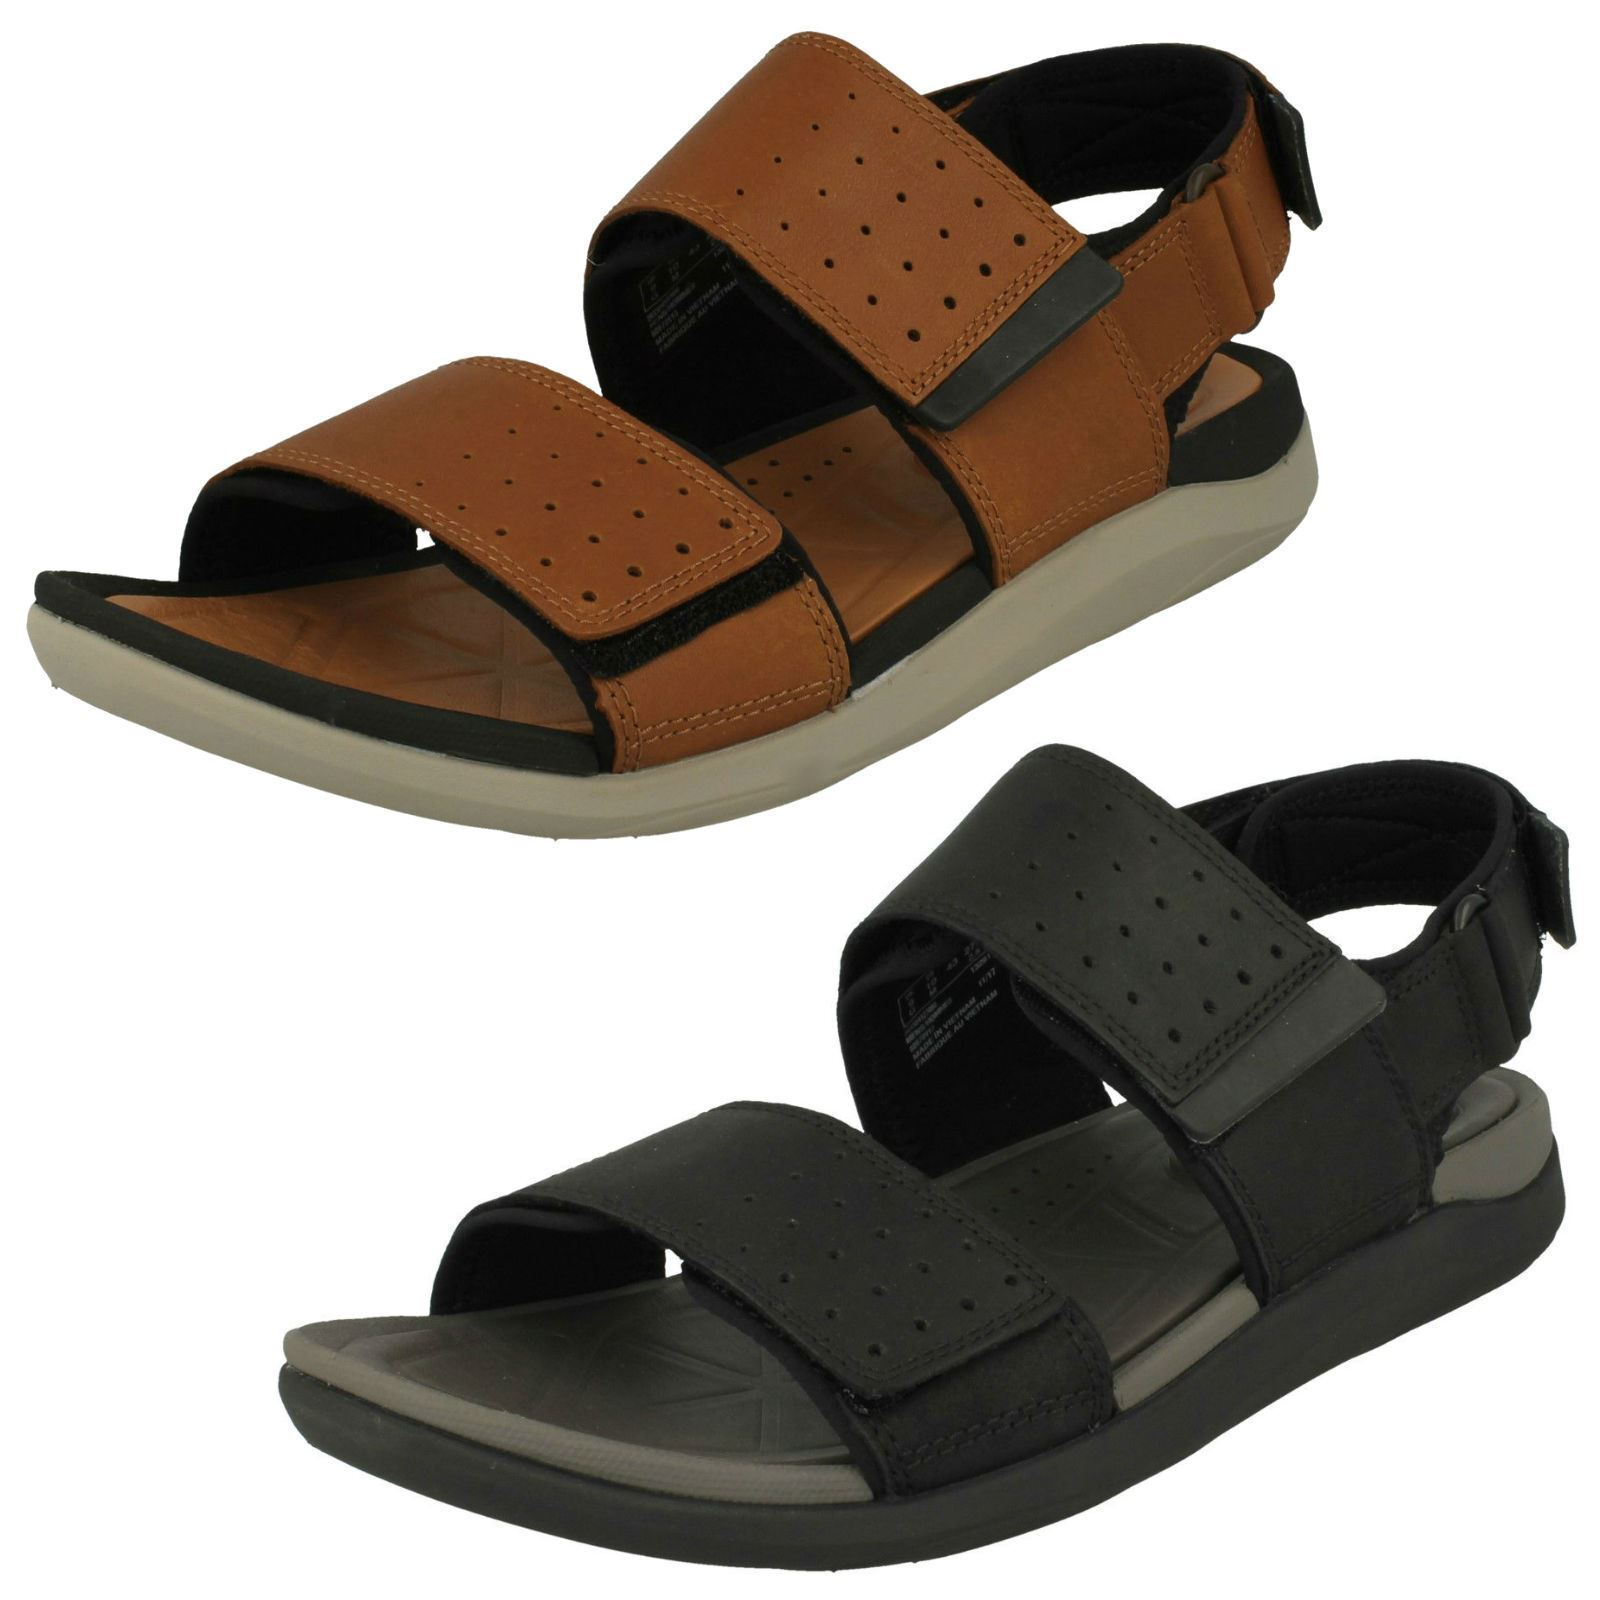 Man's/Woman's Mens Clarks feature Strapped Sandals *Garratt Active* feature Clarks Reliable performance Export cc0c1e